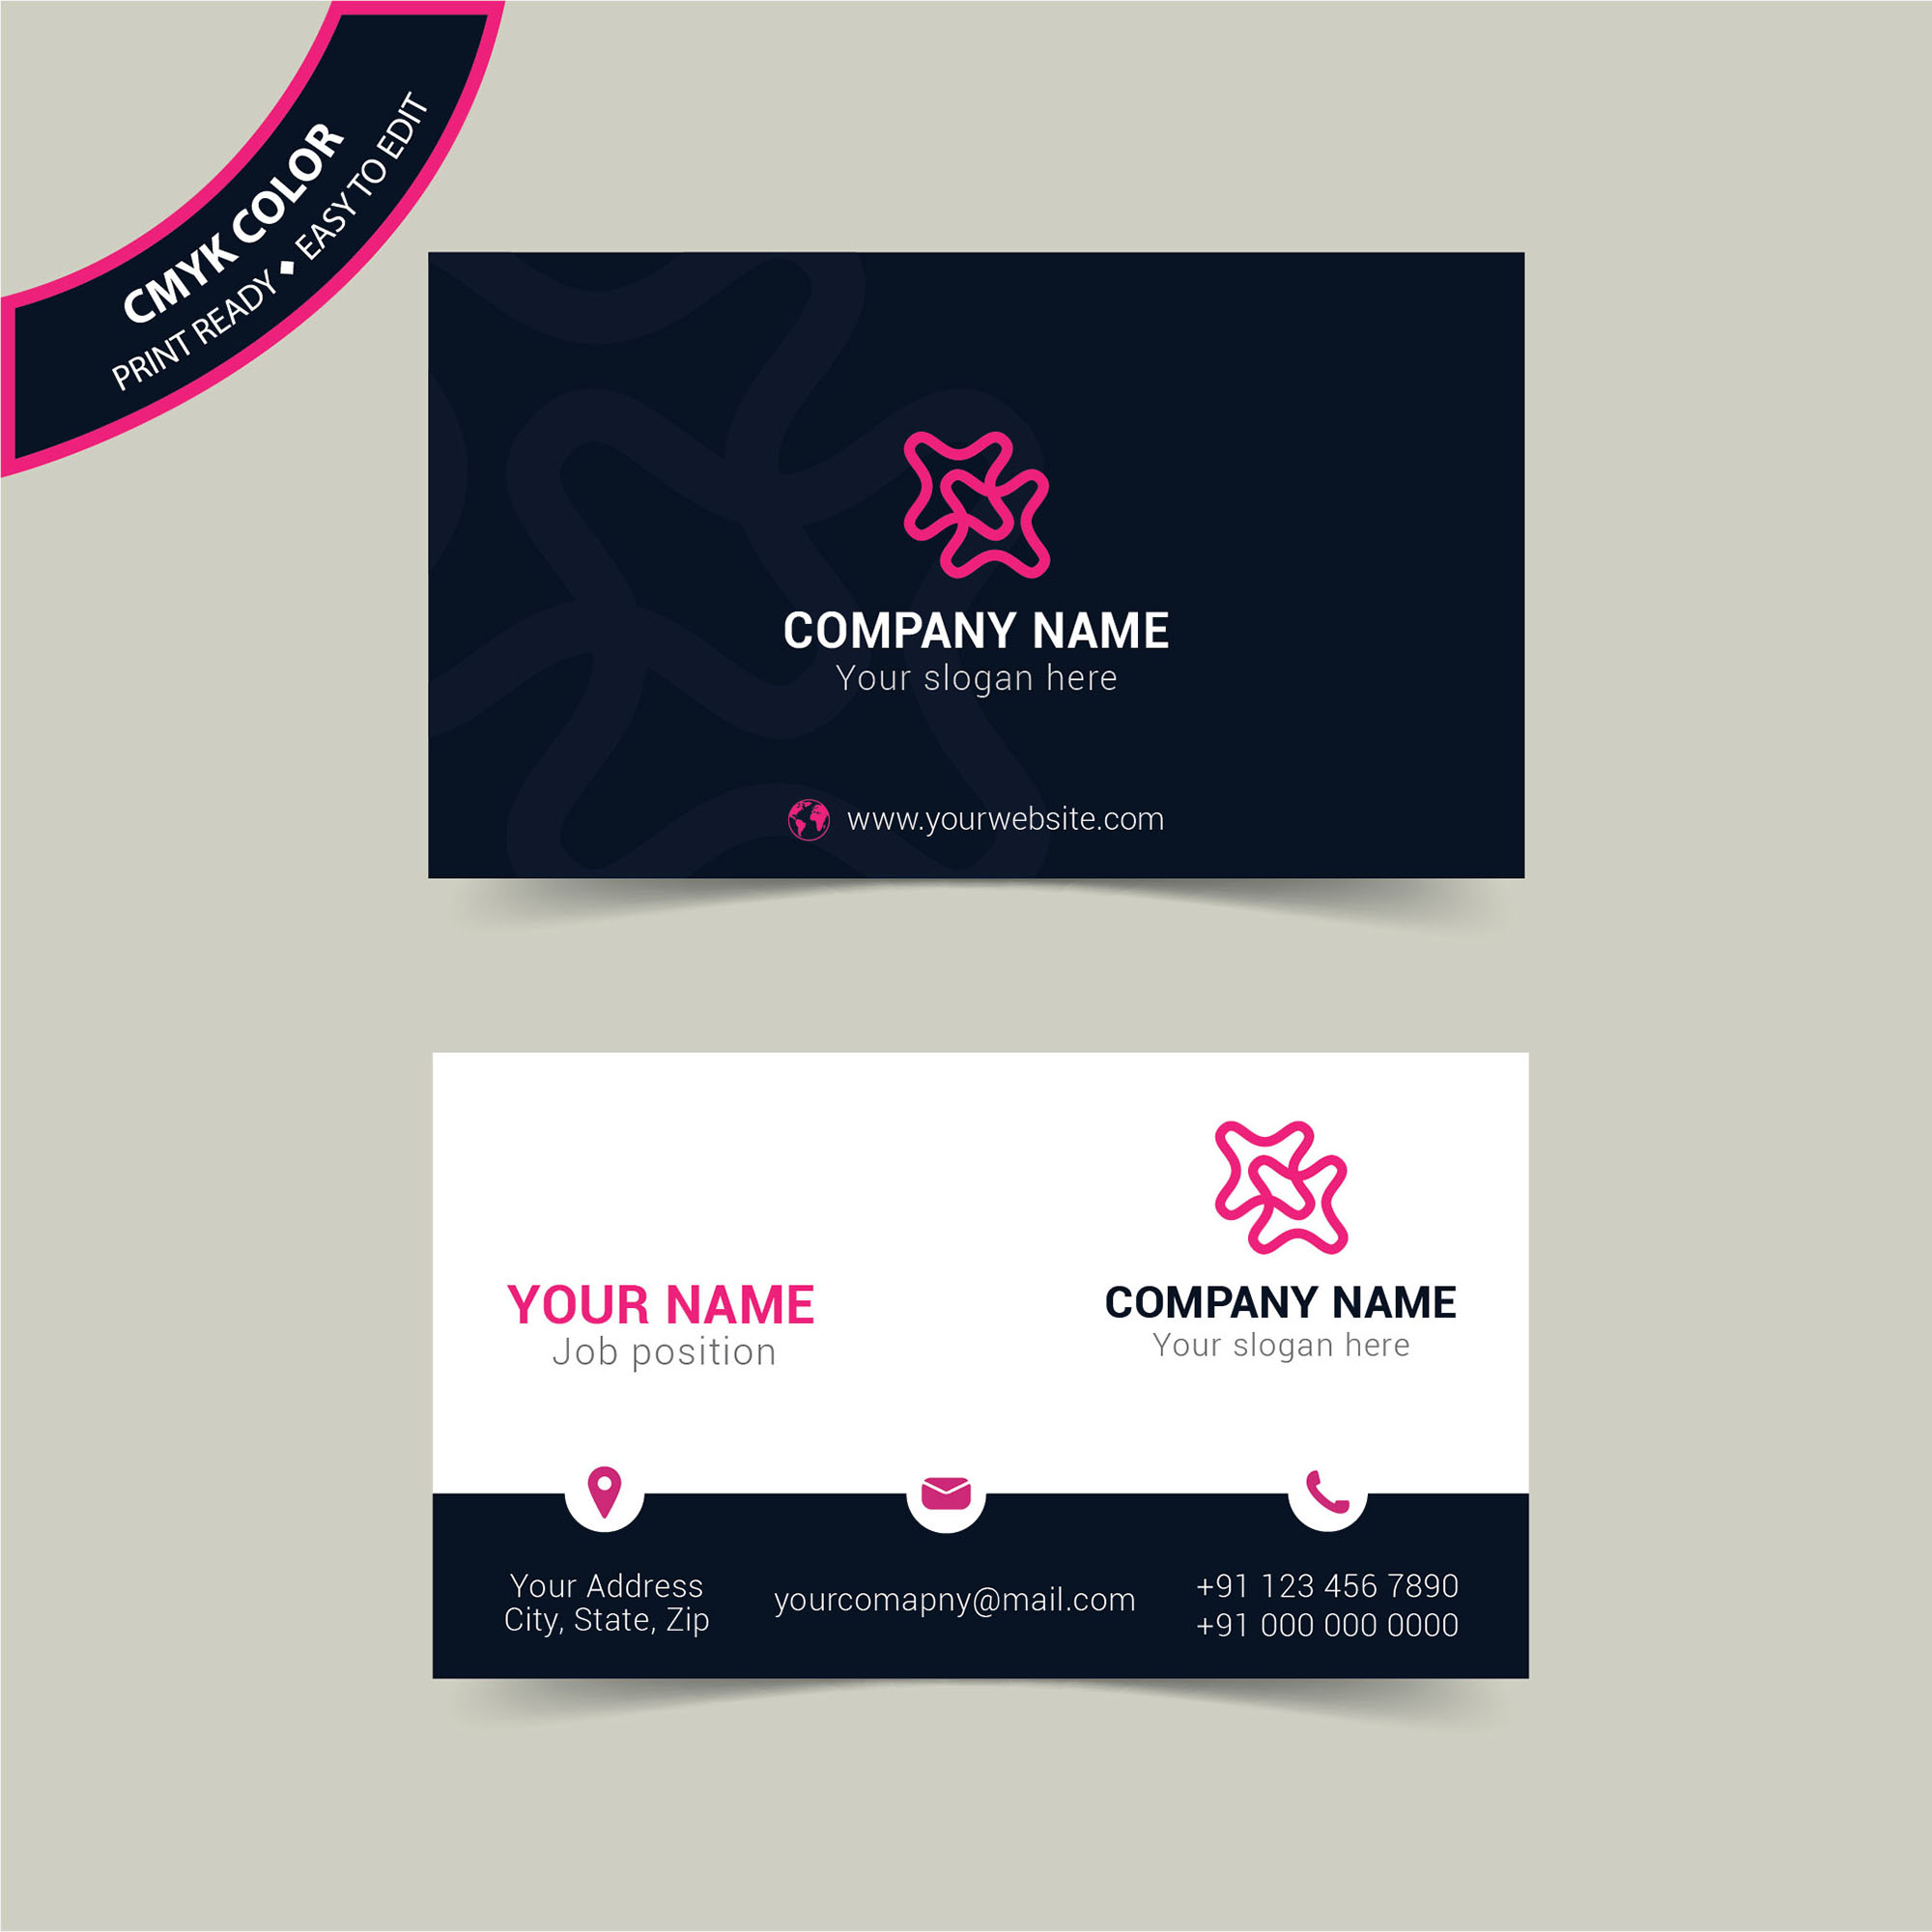 Modern simple business card template free download wisxi business card business cards business card design business card template design templates cheaphphosting Gallery